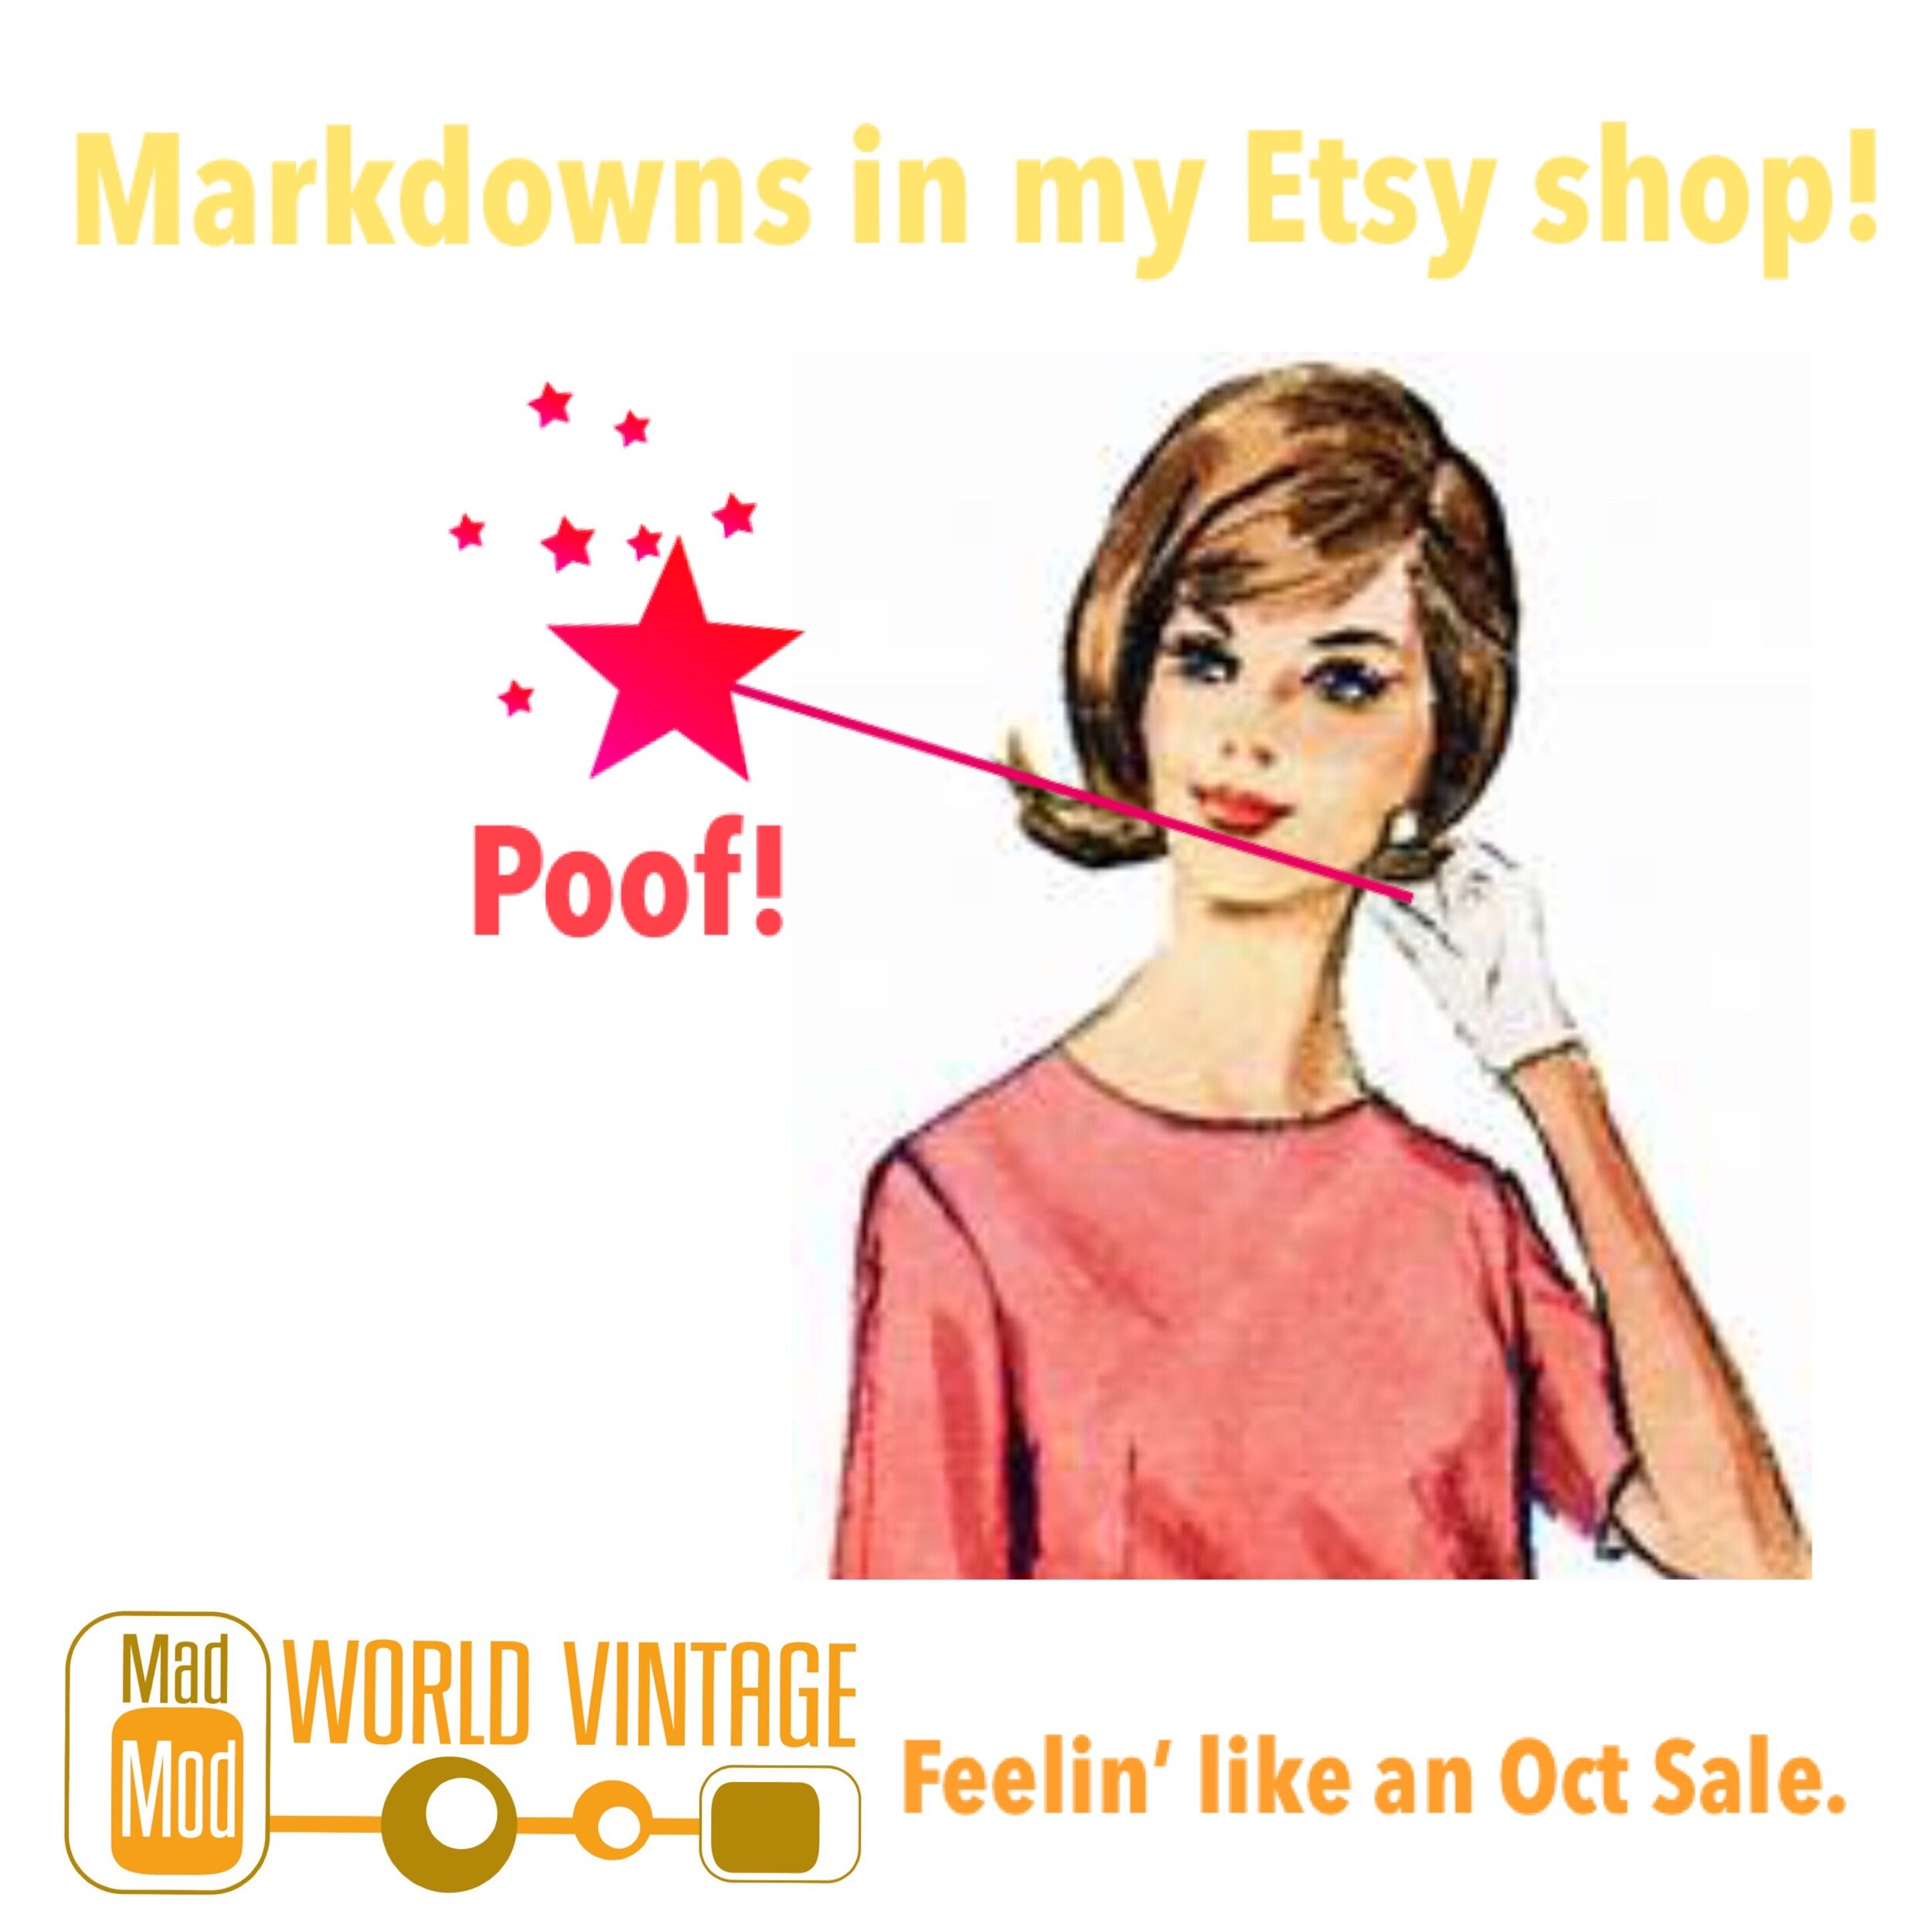 Shop and save! Lots of markdowns in my Etsy shop! Sale runs through oct 31.